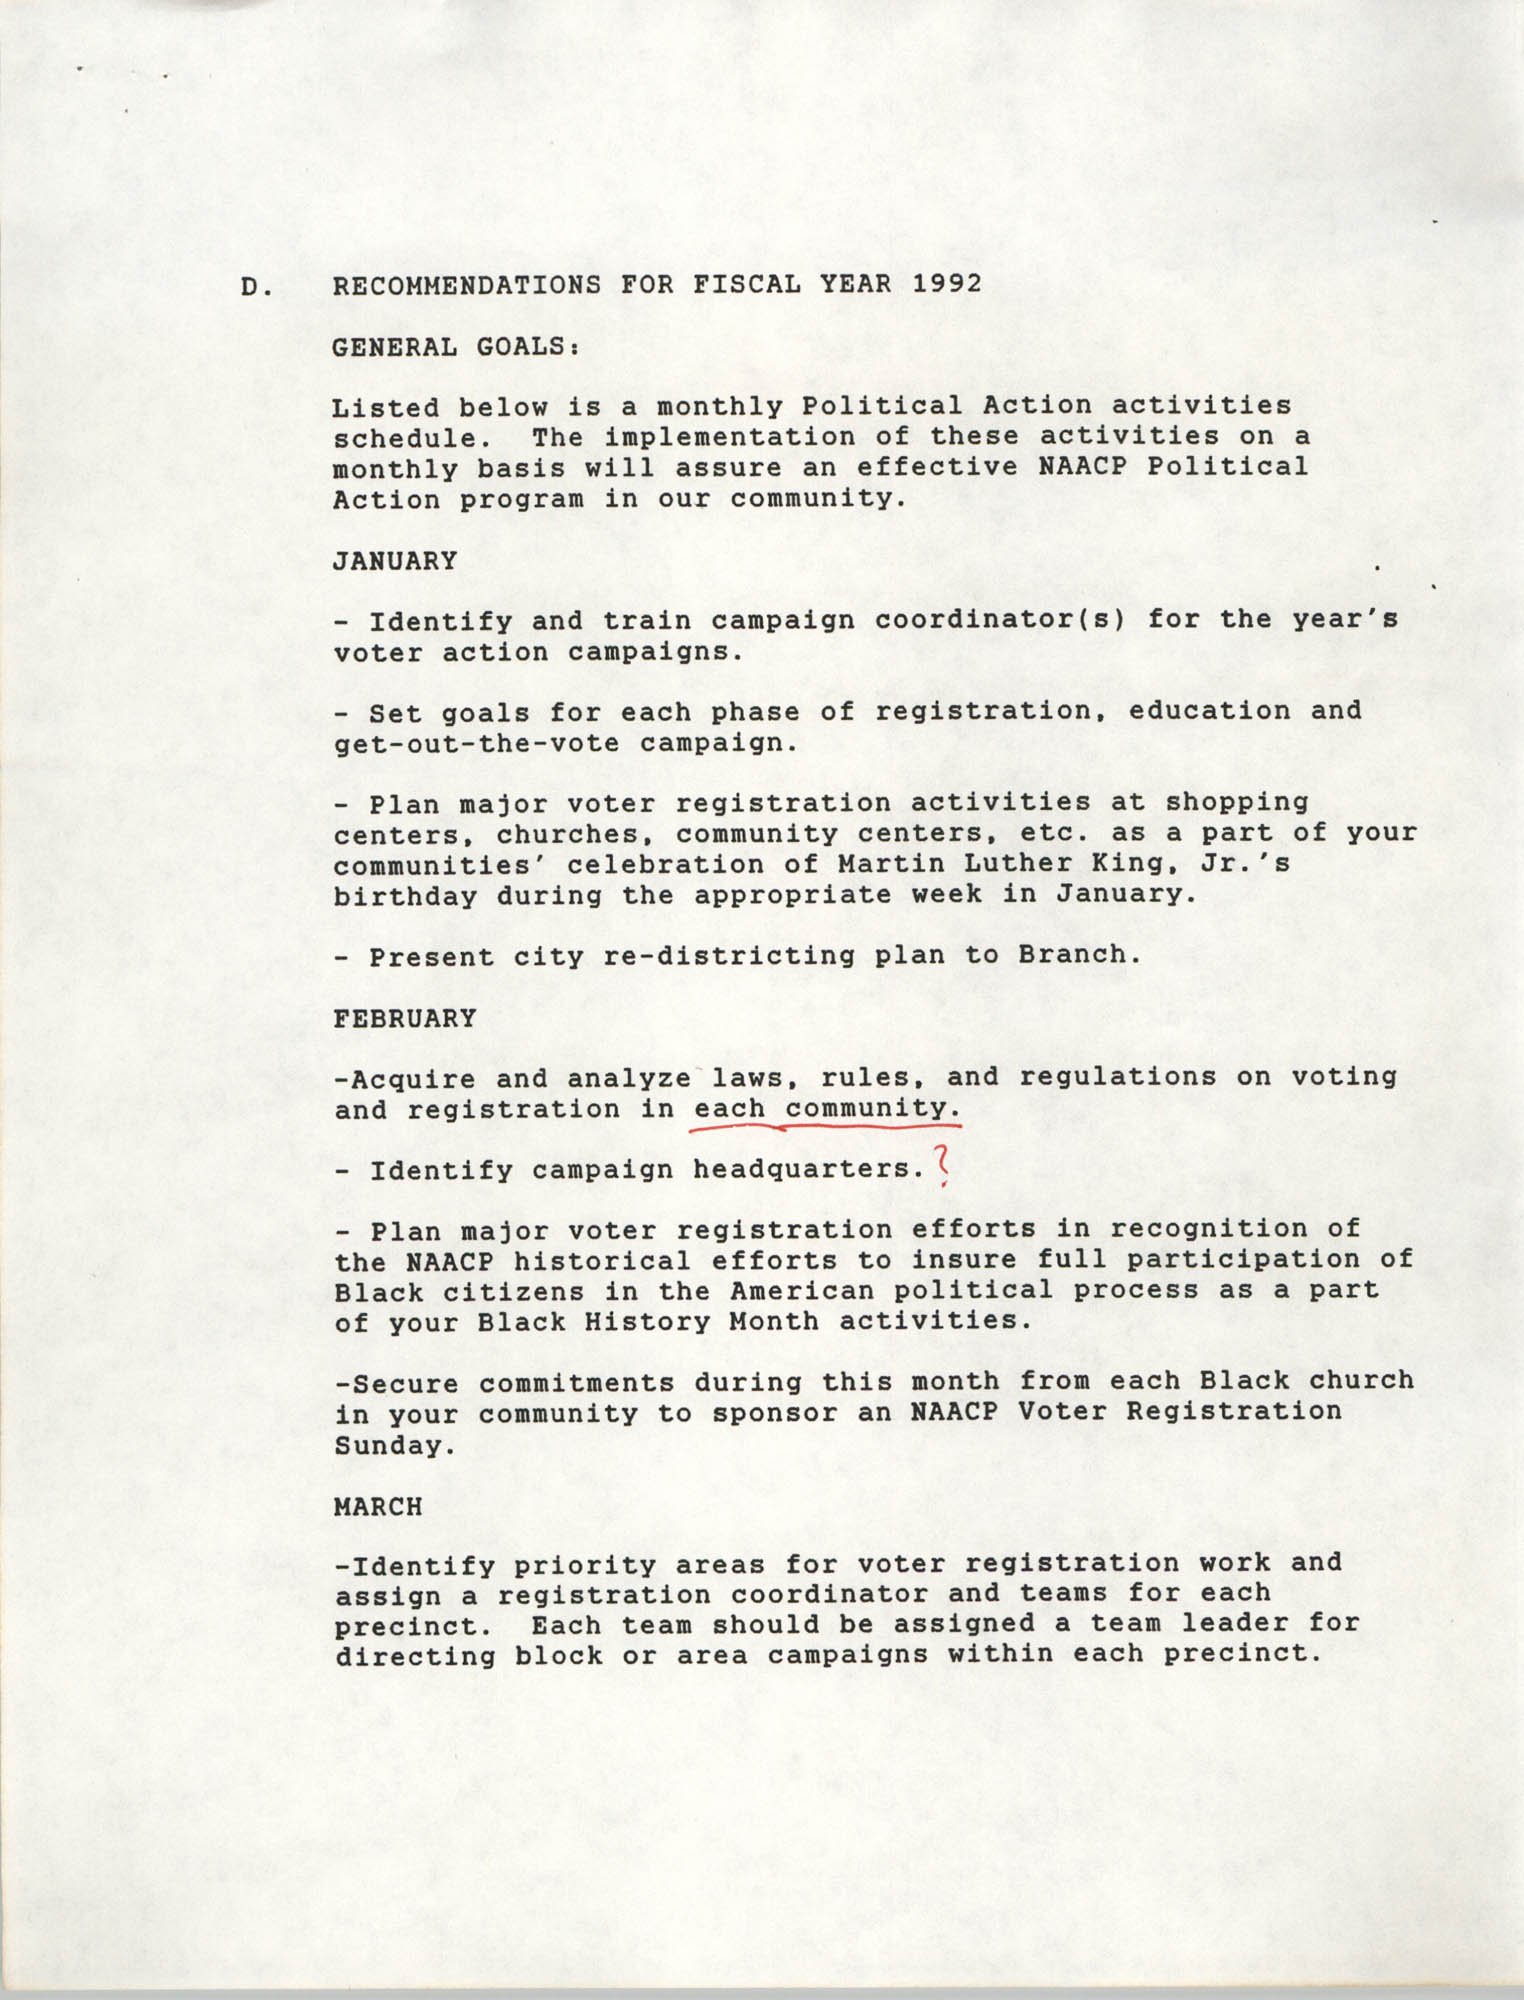 Recommendations for Fiscal Year 1992, Political Action Committee, NAACP